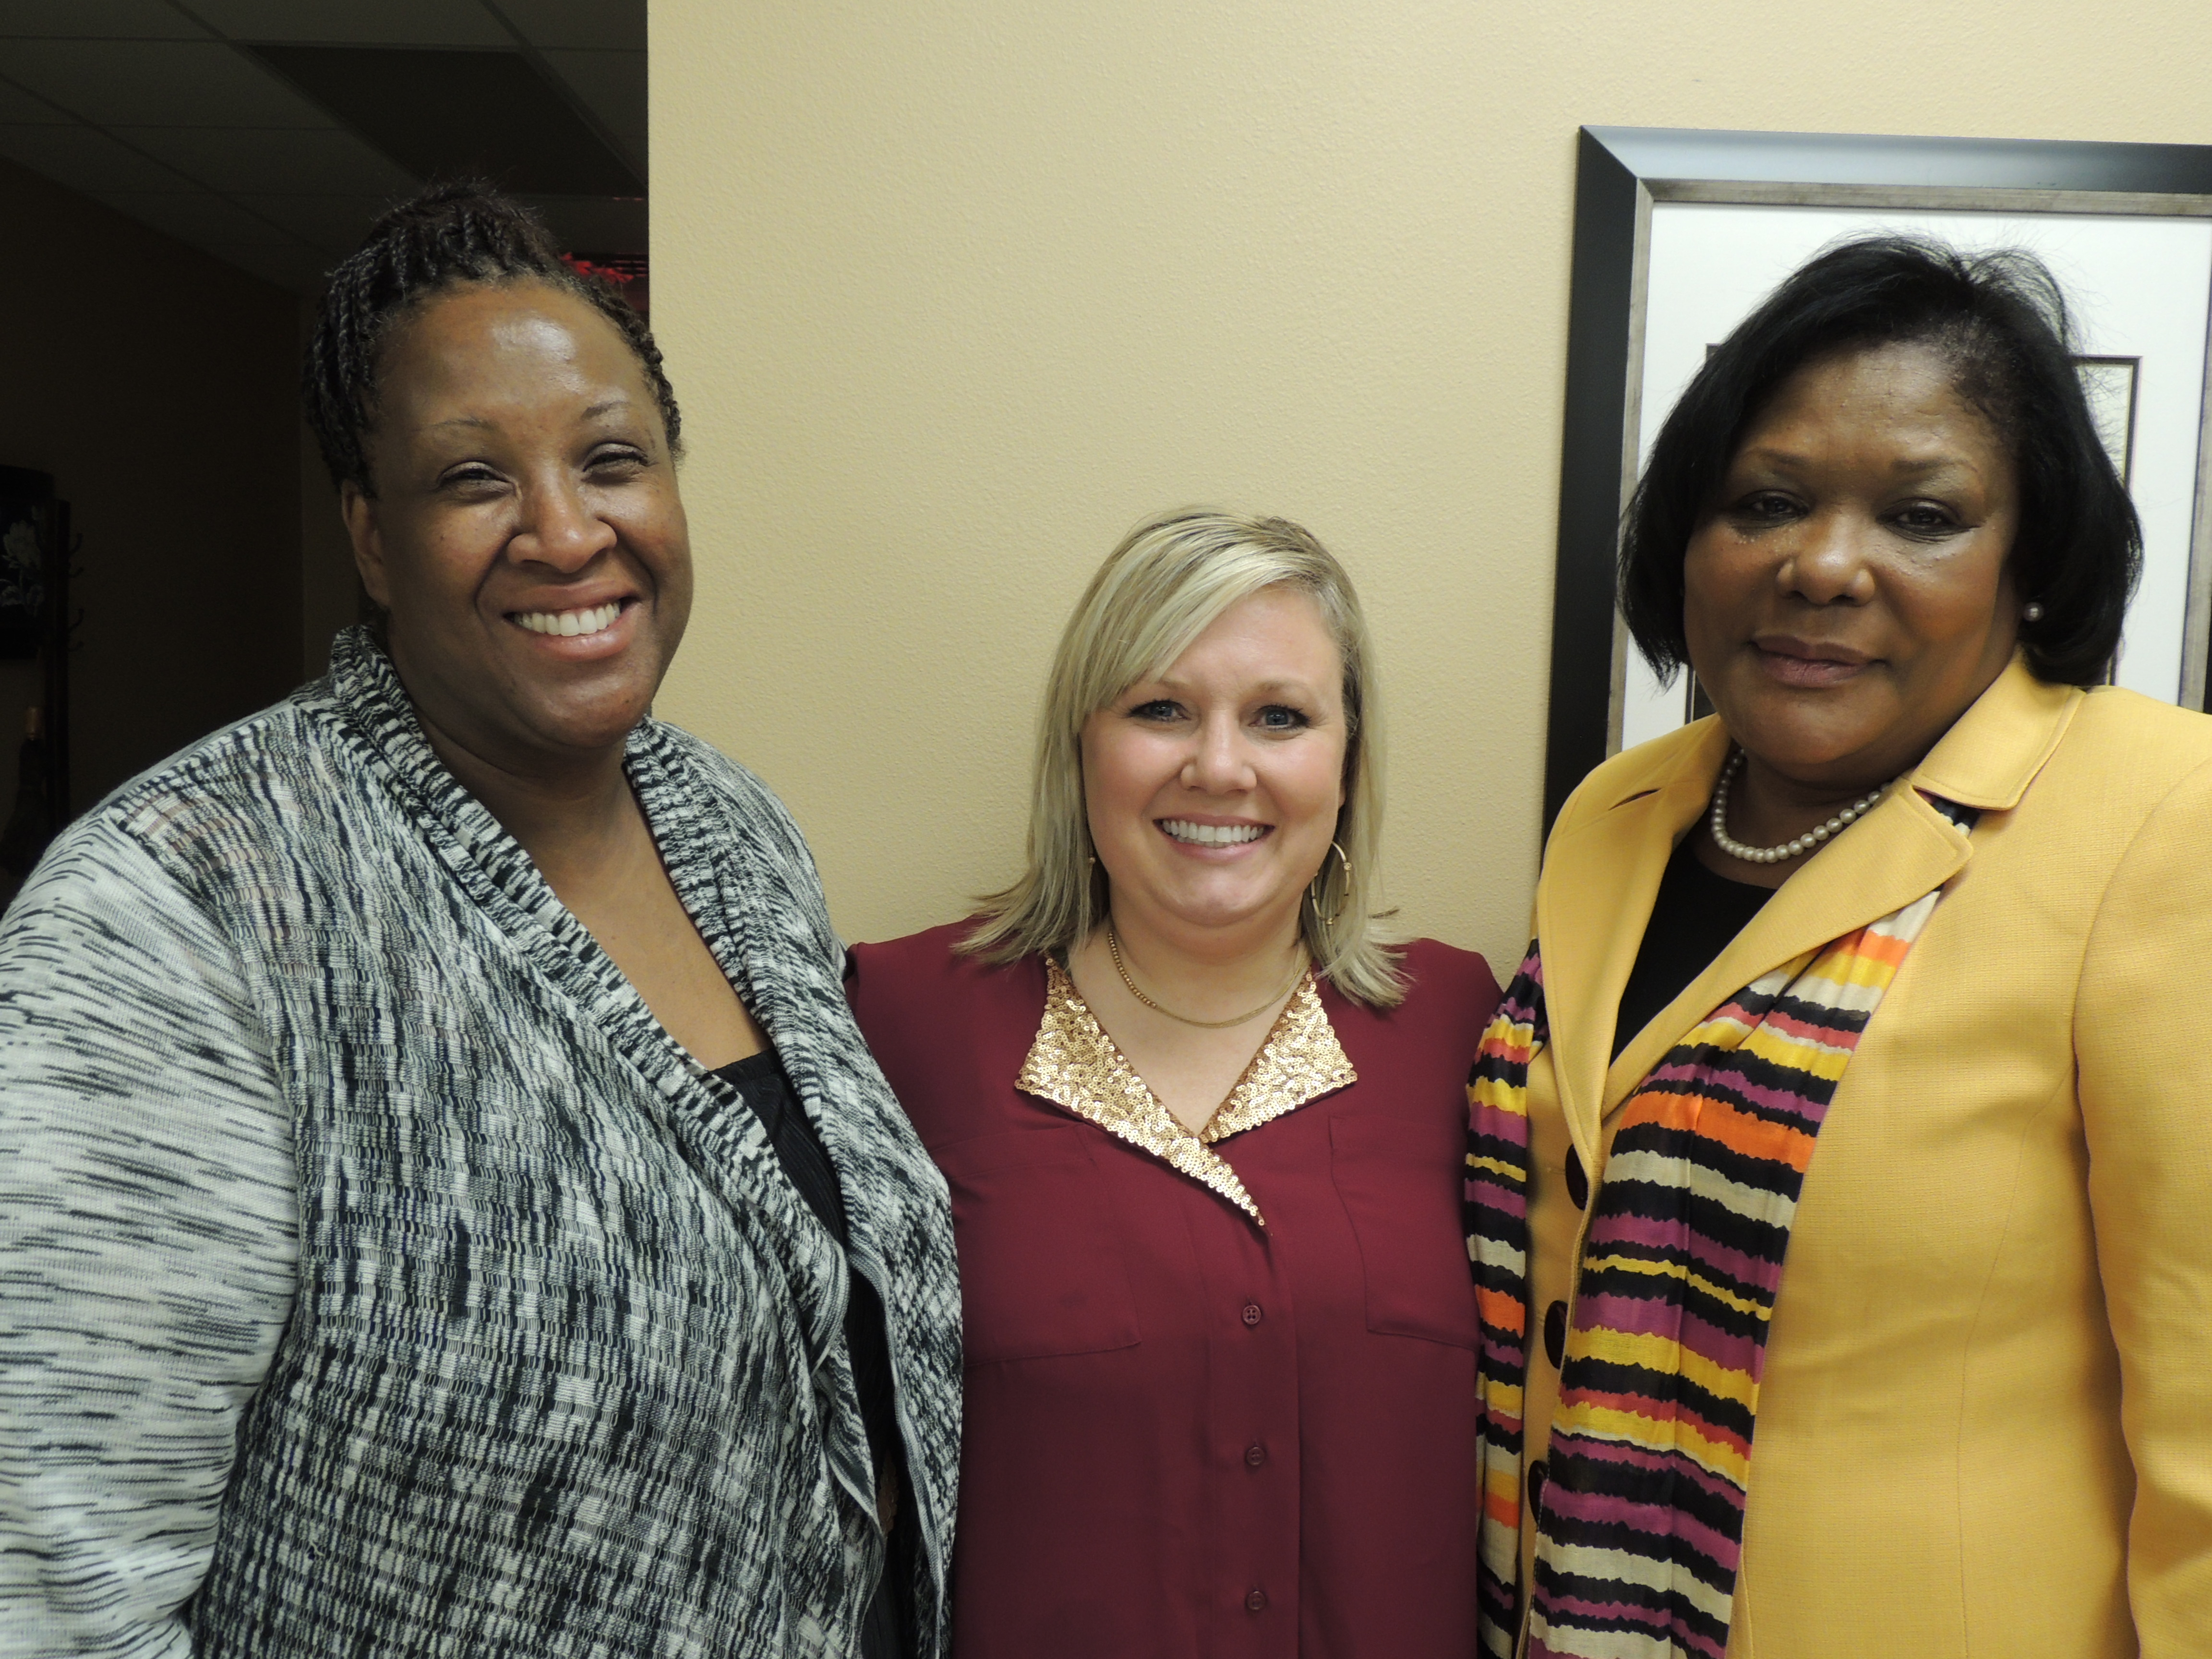 Iketha Williams-Scholarship Chair; Robin Cox-Serenity Care Providers; Angie Jackson-Wilson-BPW Pres.